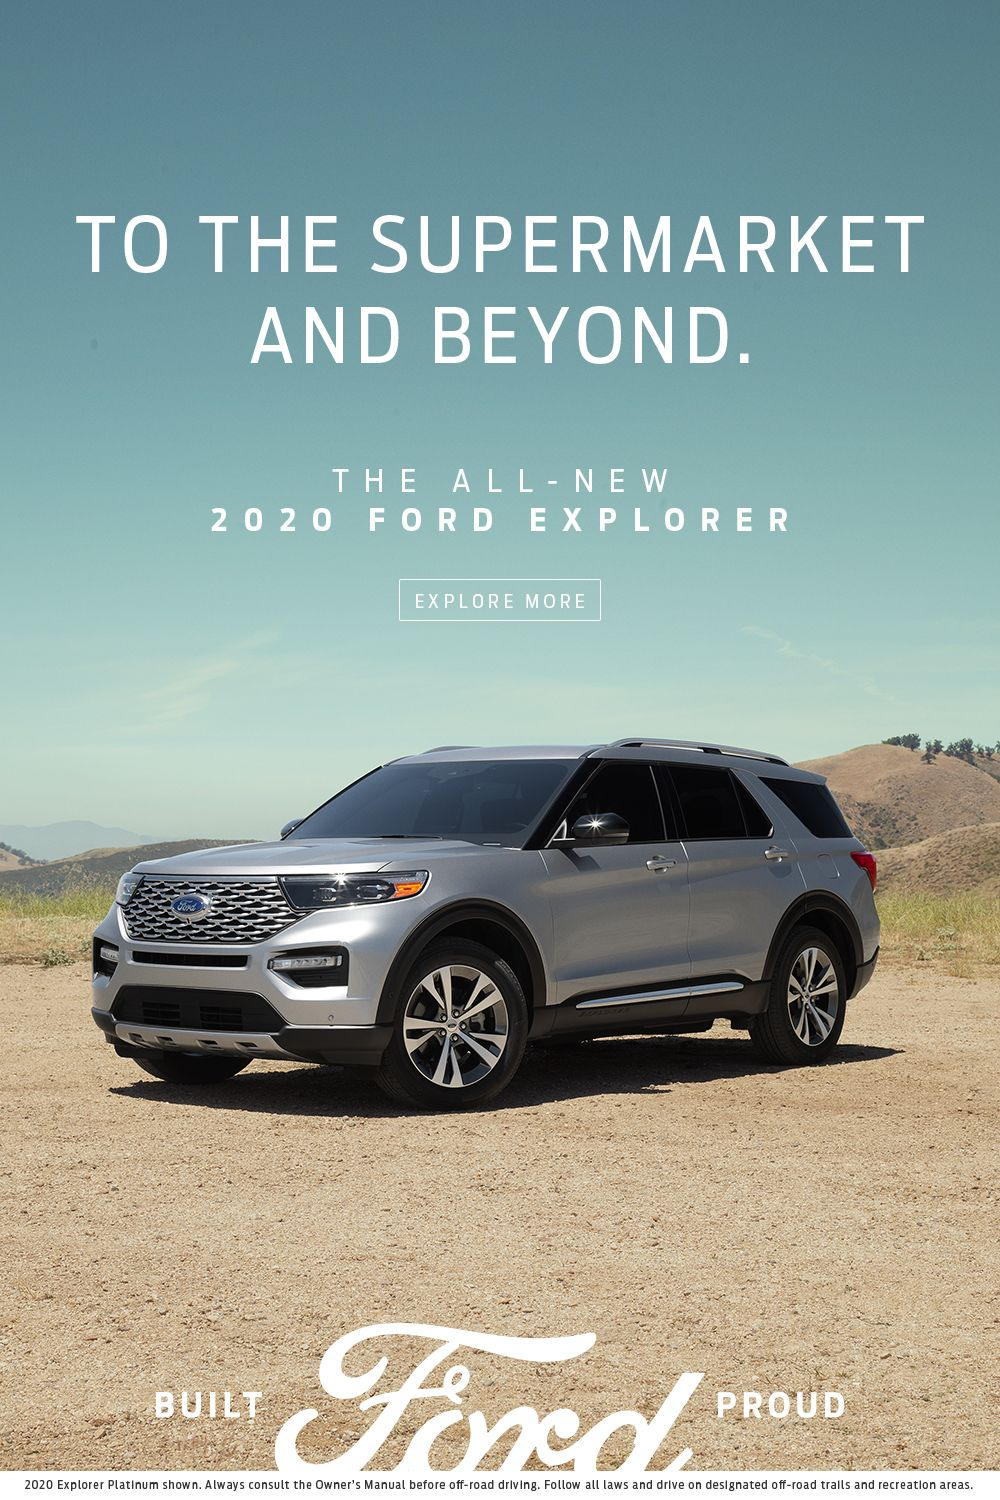 To The Supermarket And Beyond 2020 Ford Explorer Ford Explorer New Explorer